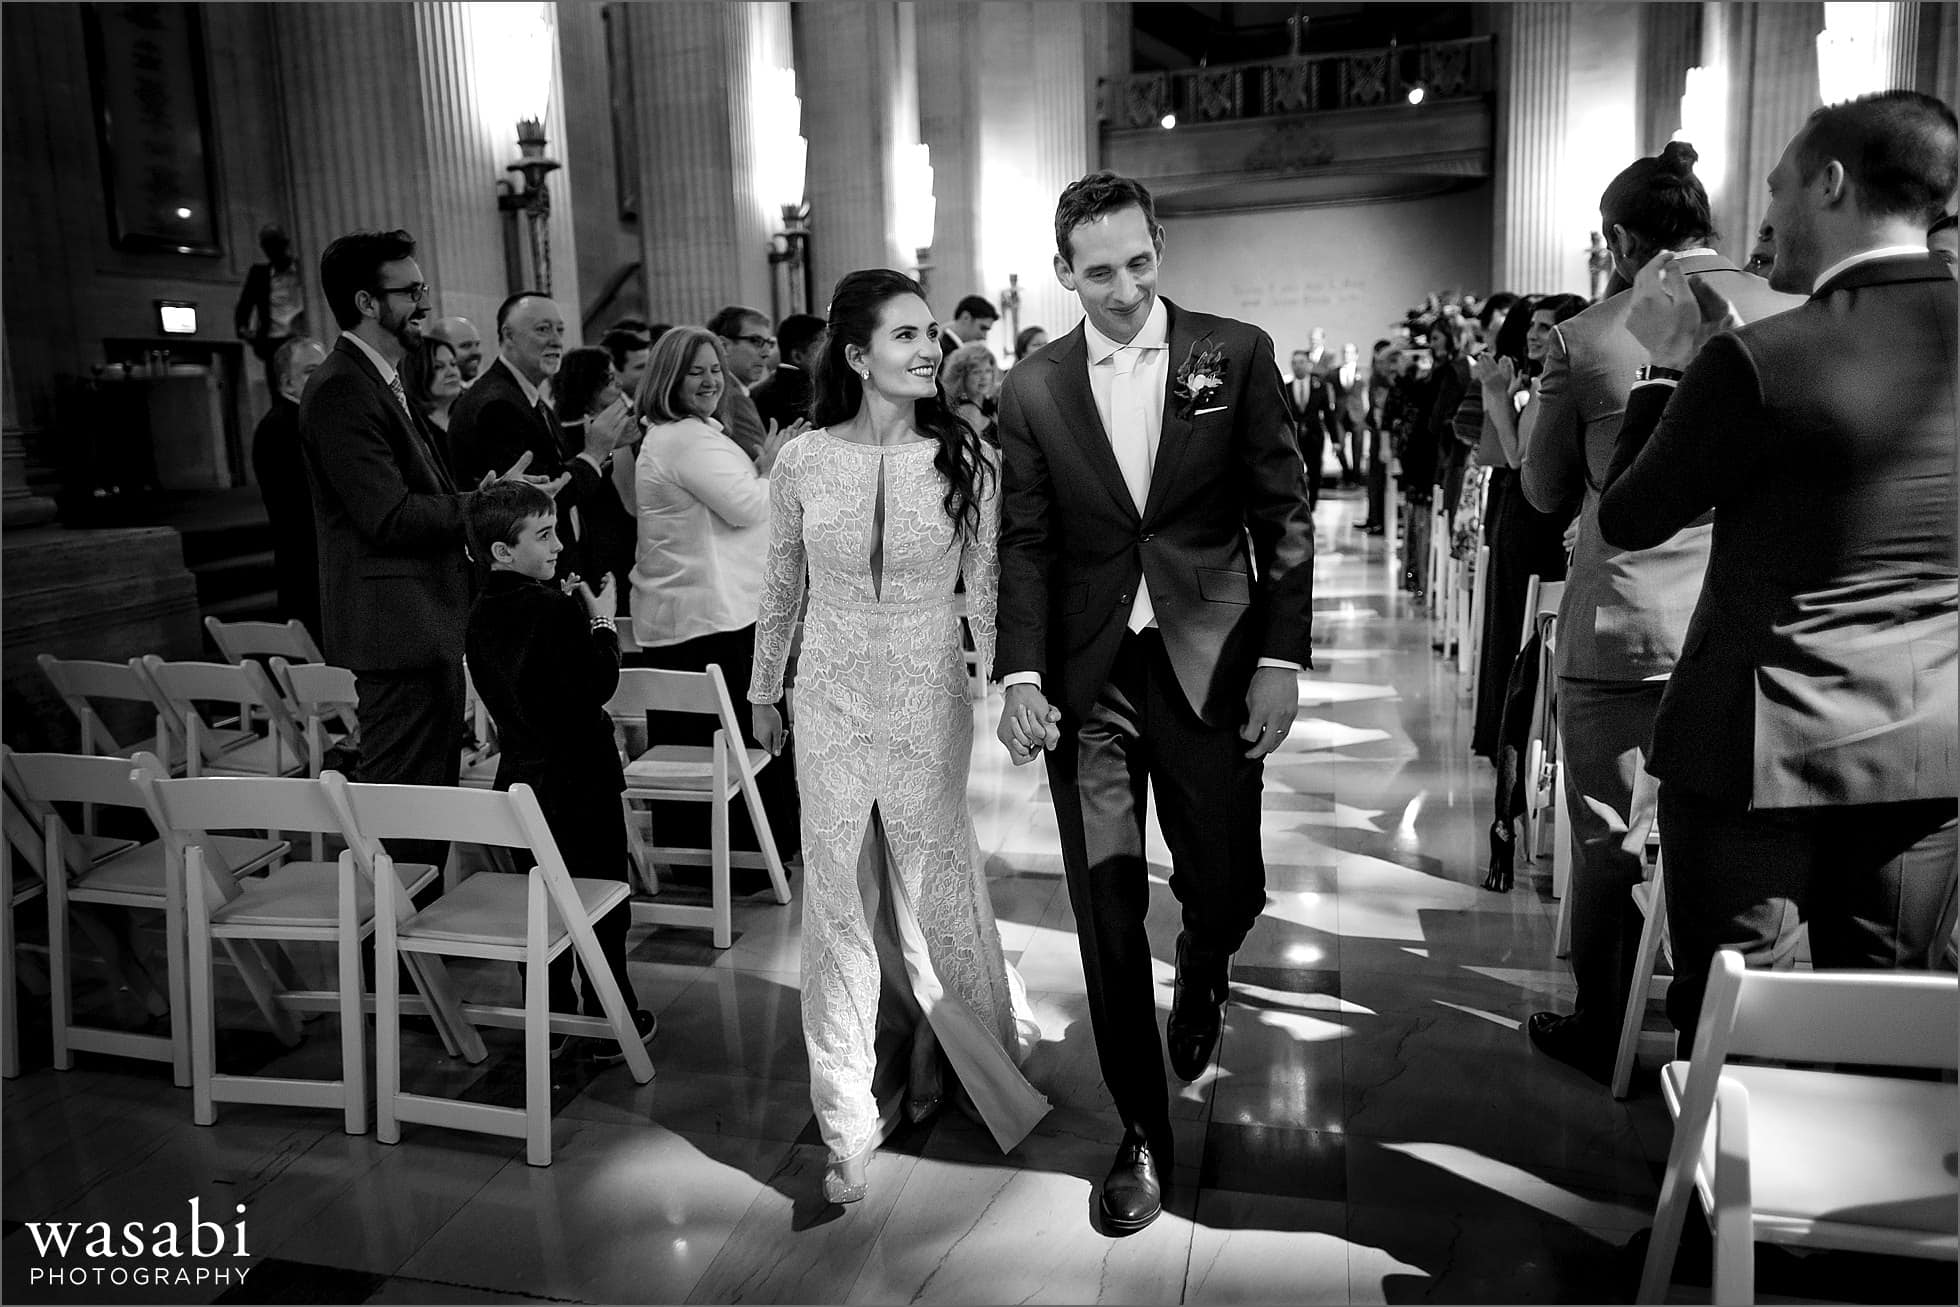 bride and groom hold hands walking back down aisle after getting wedding ceremony at Lyric Opera House Chicago wedding in Daniel F. and Ada L. Rice Grand Foyer